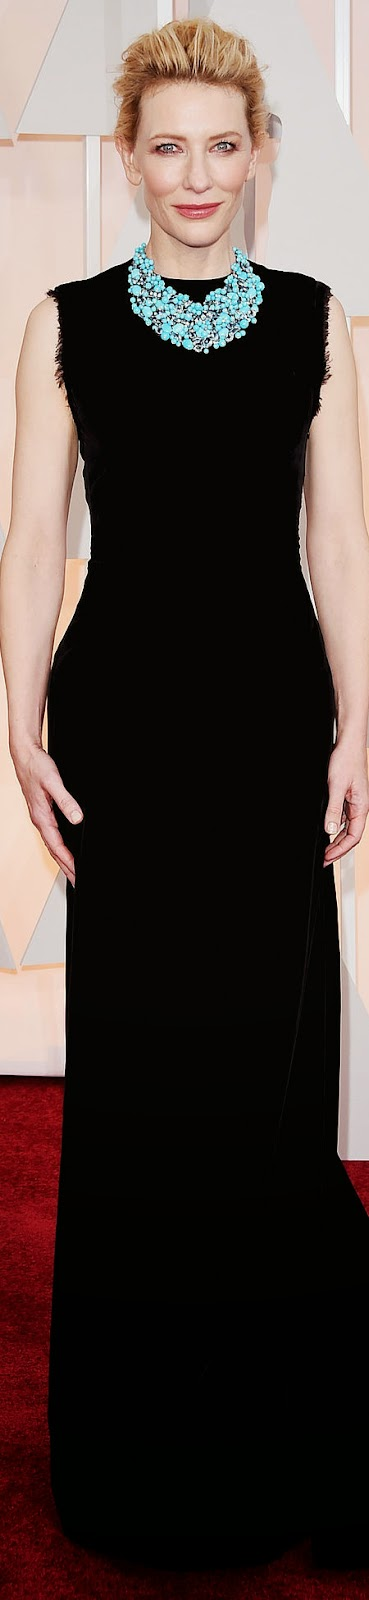 CATE BLANCHETTE 2015 OSCAR RED CARPET